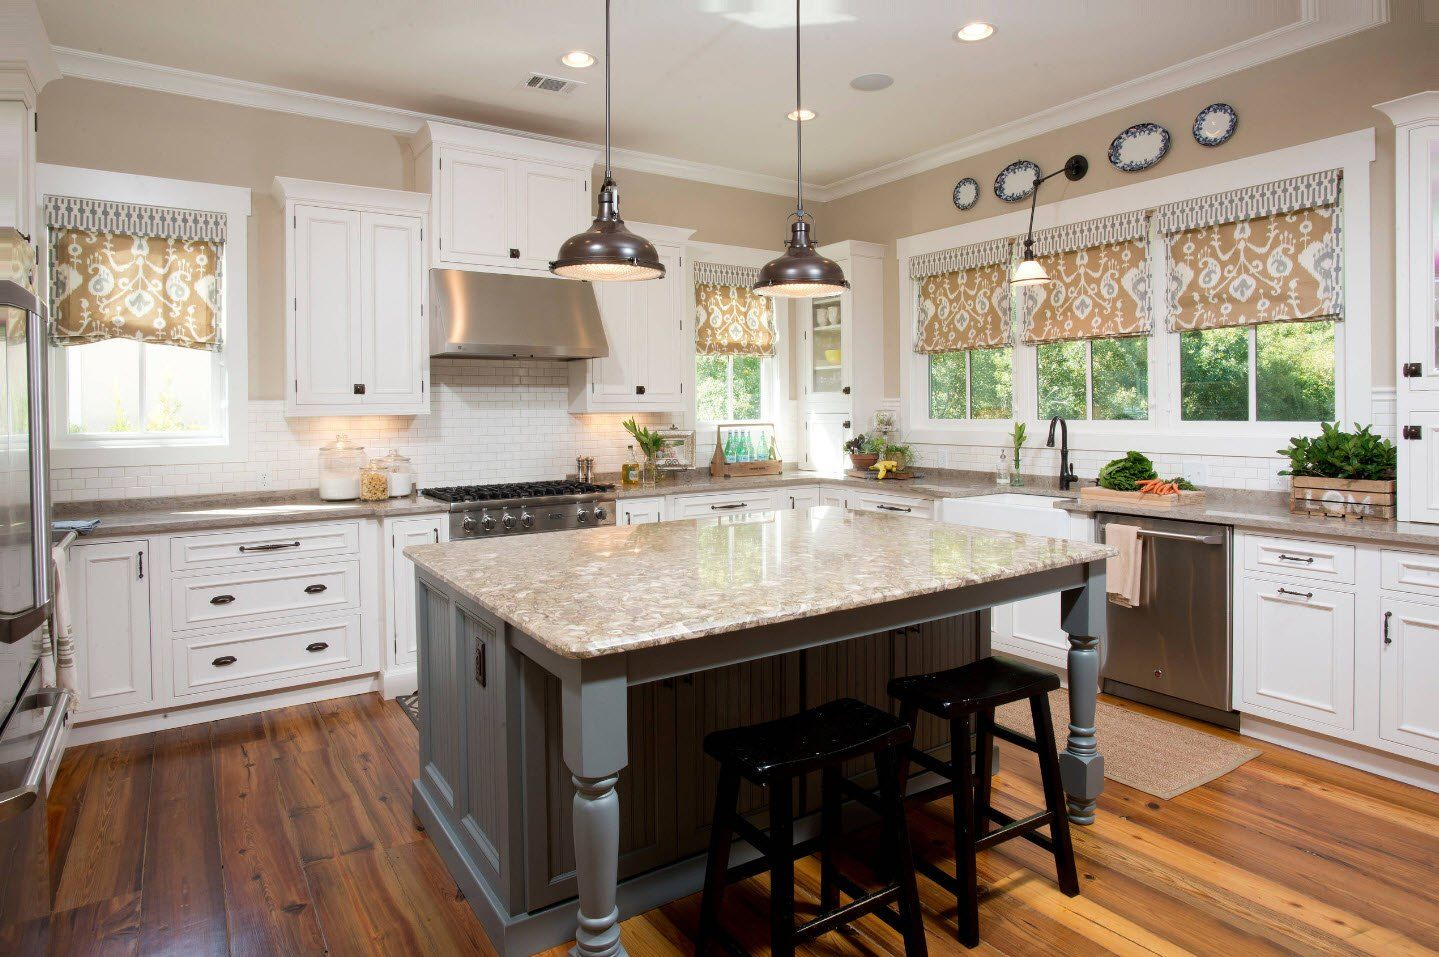 170 Square Feet Kitchen Design Ideas with Photos. Nice Classic finishing with dark wooden island trimming